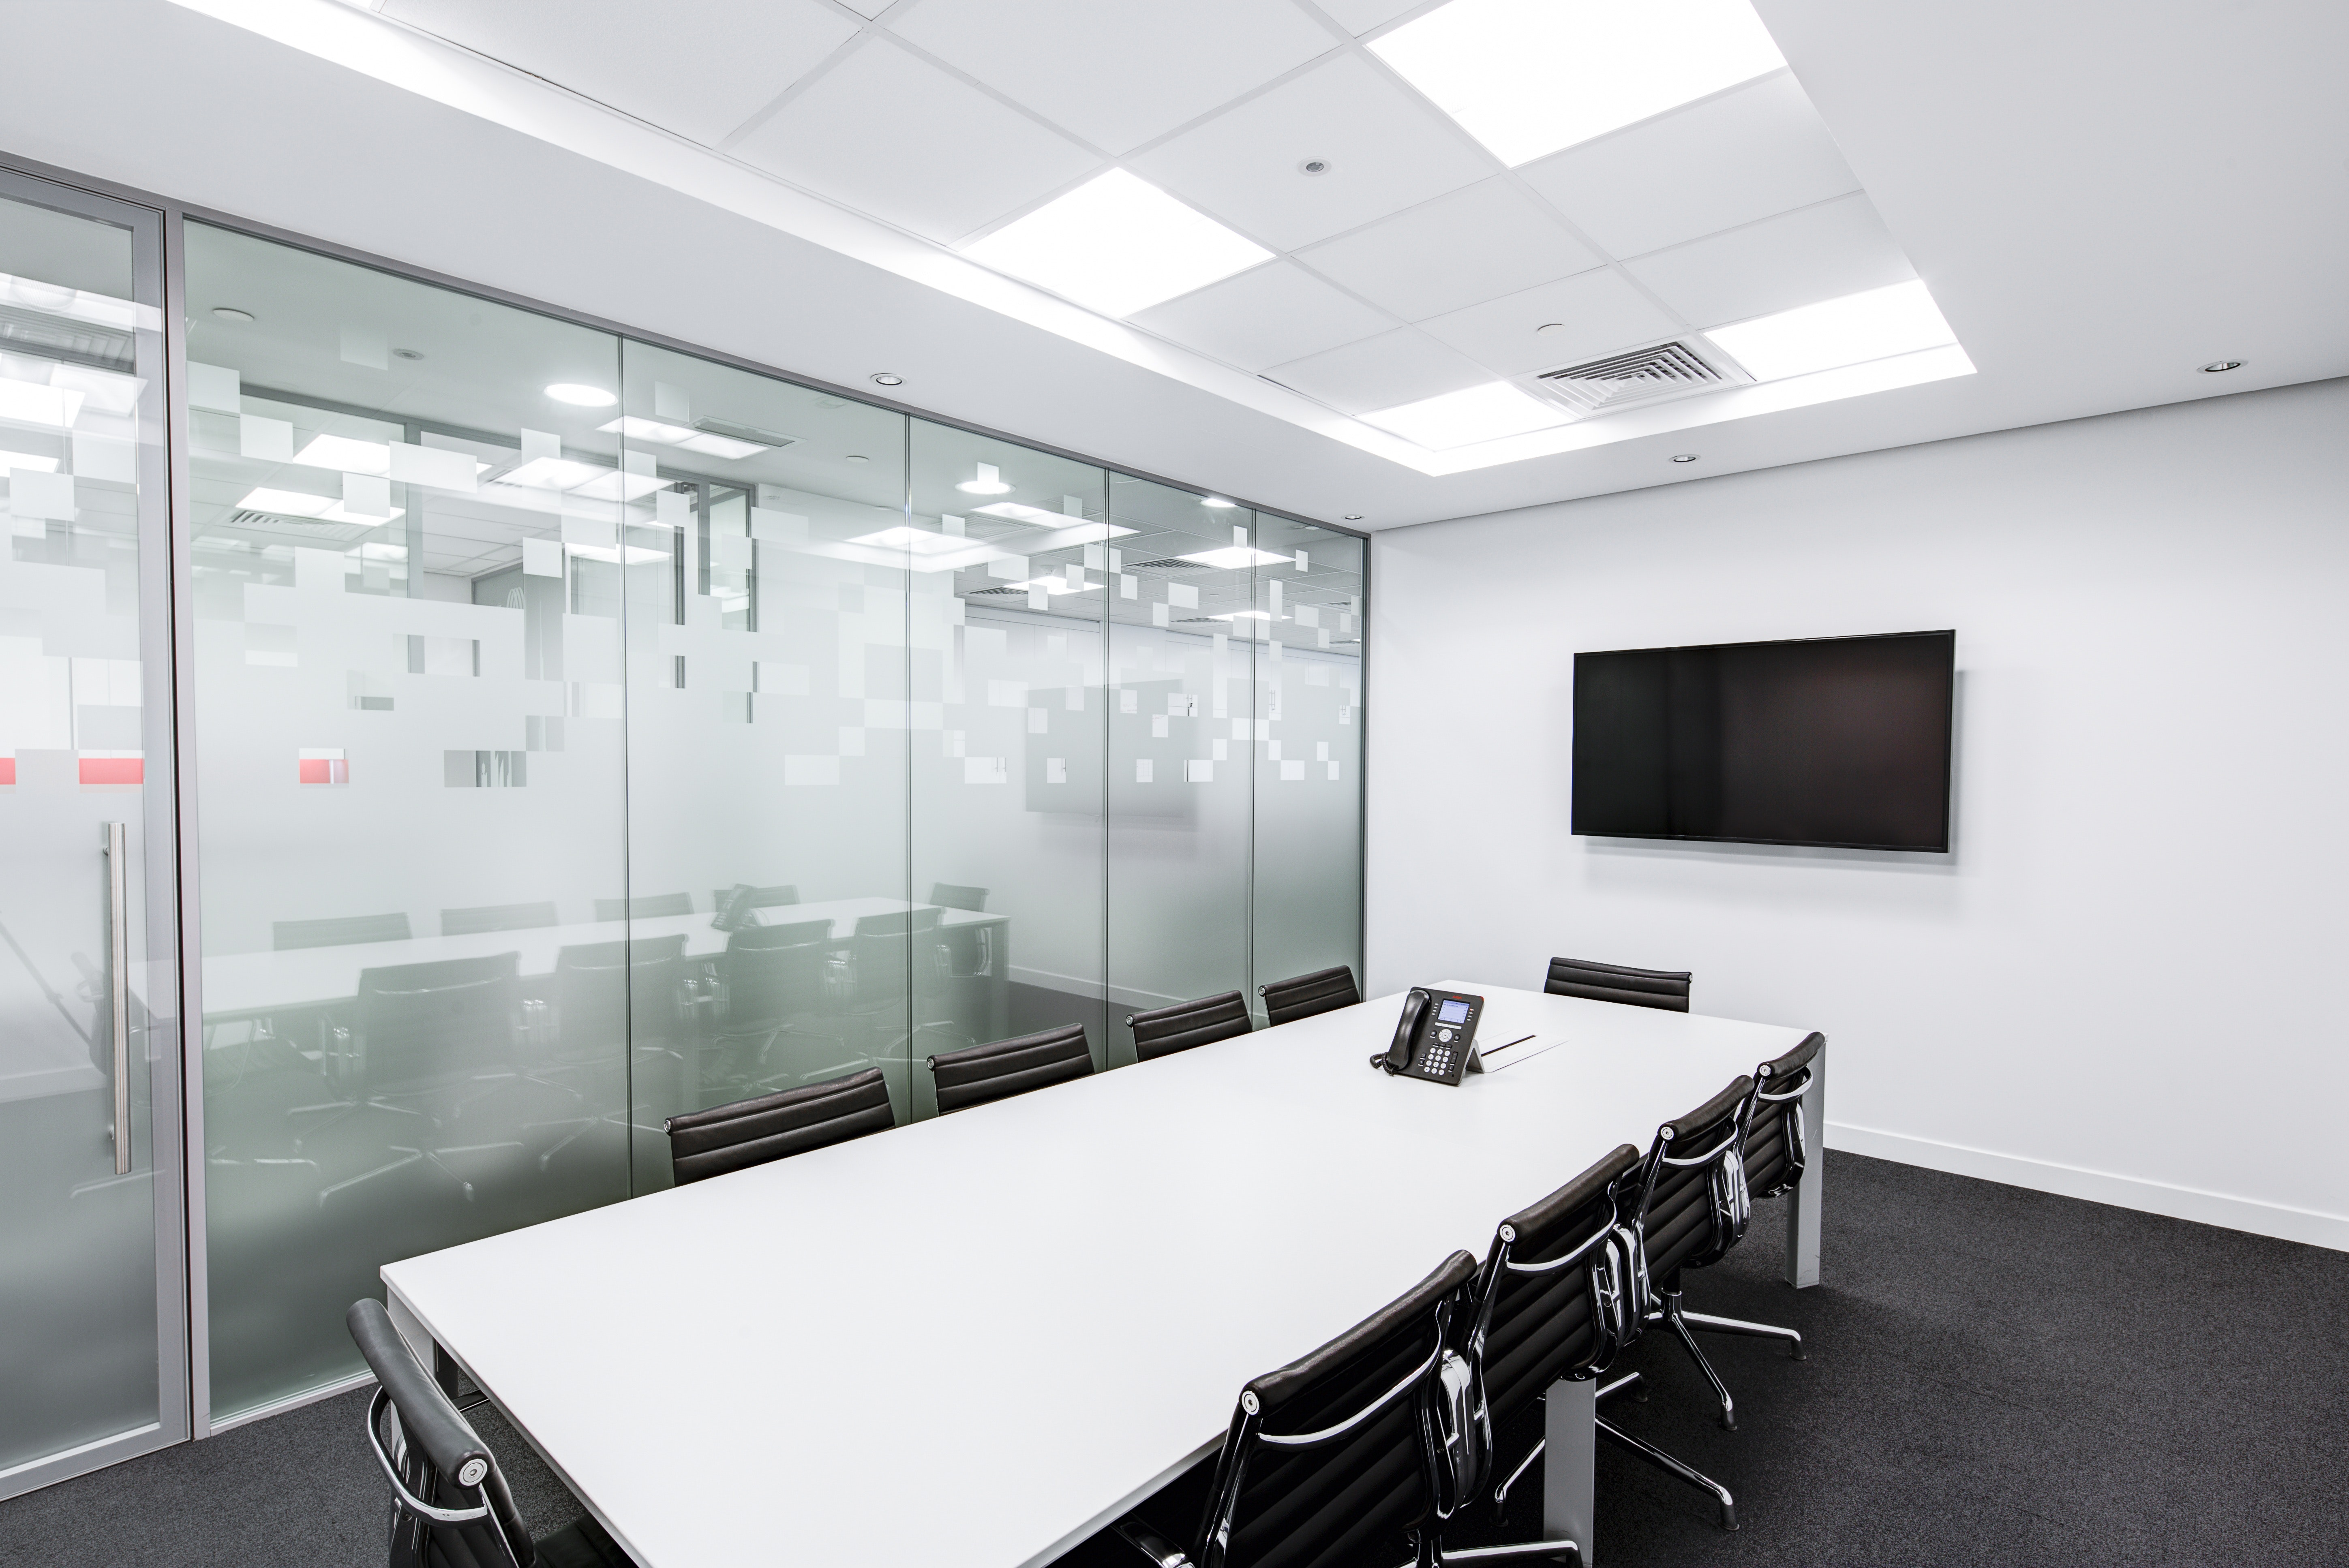 black-and-white-boardroom-ceiling-260689